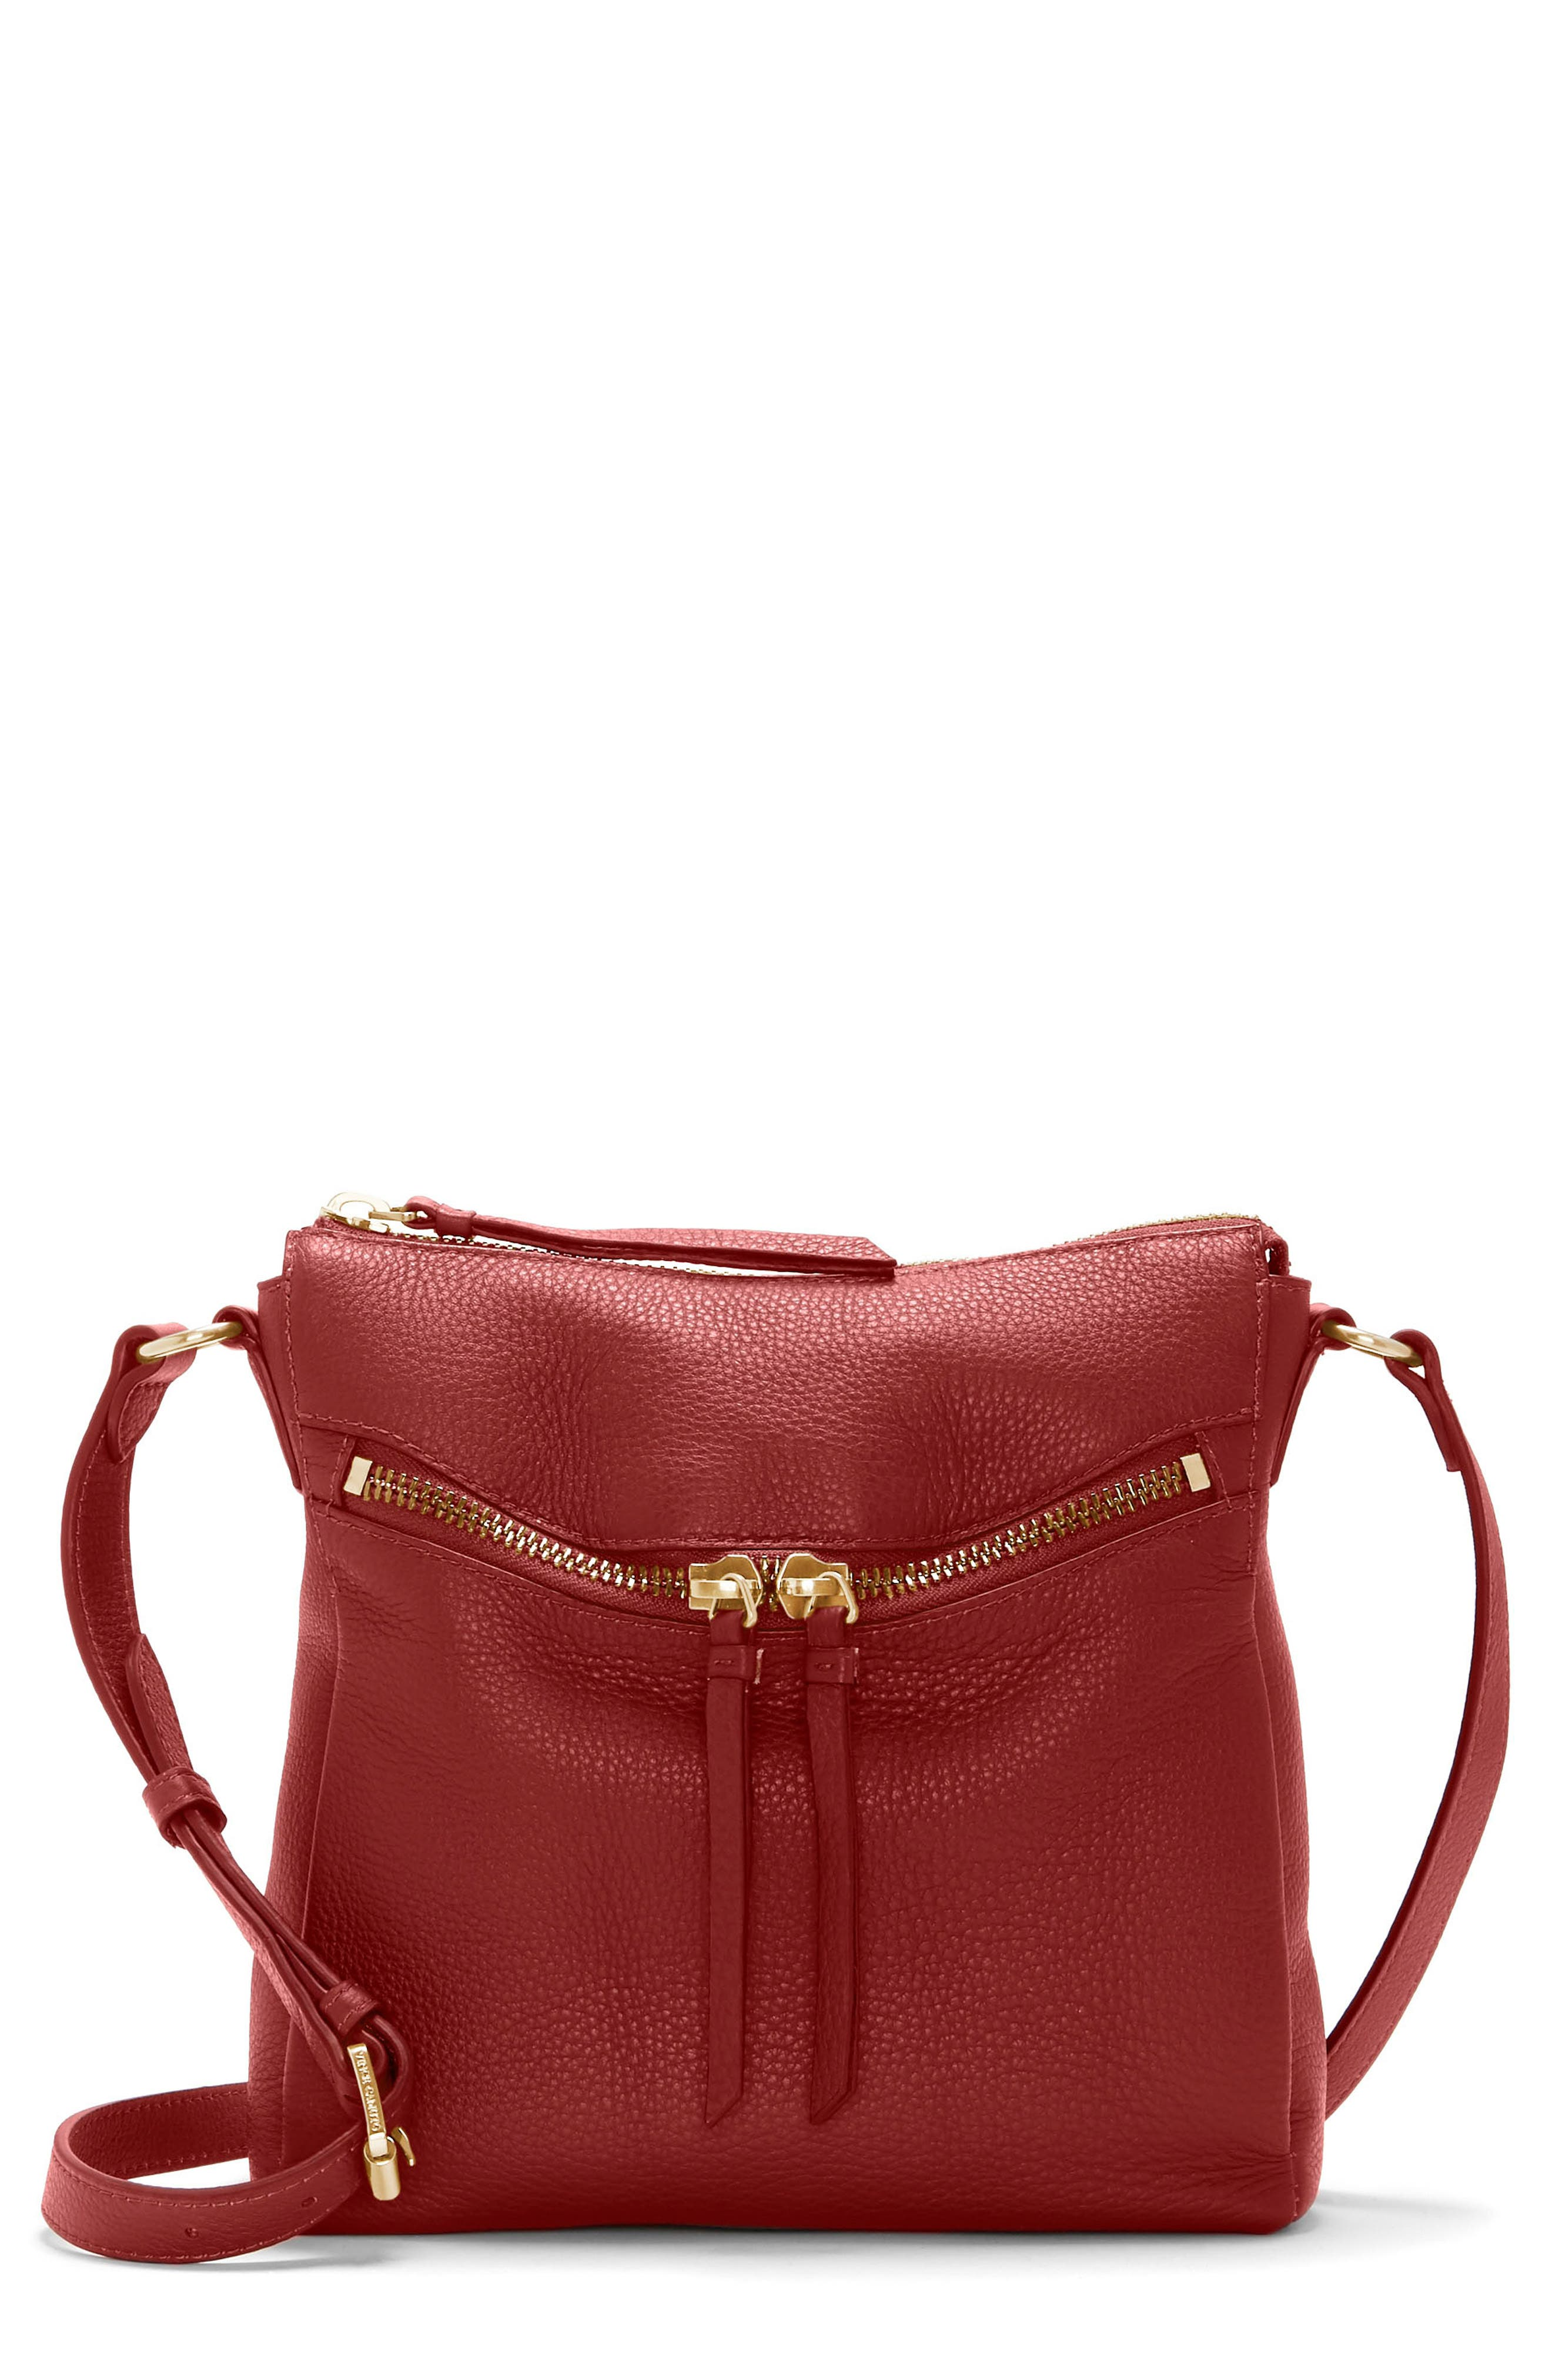 Staja Leather Crossbody Bag,                             Main thumbnail 1, color,                             PEPPER BERRY